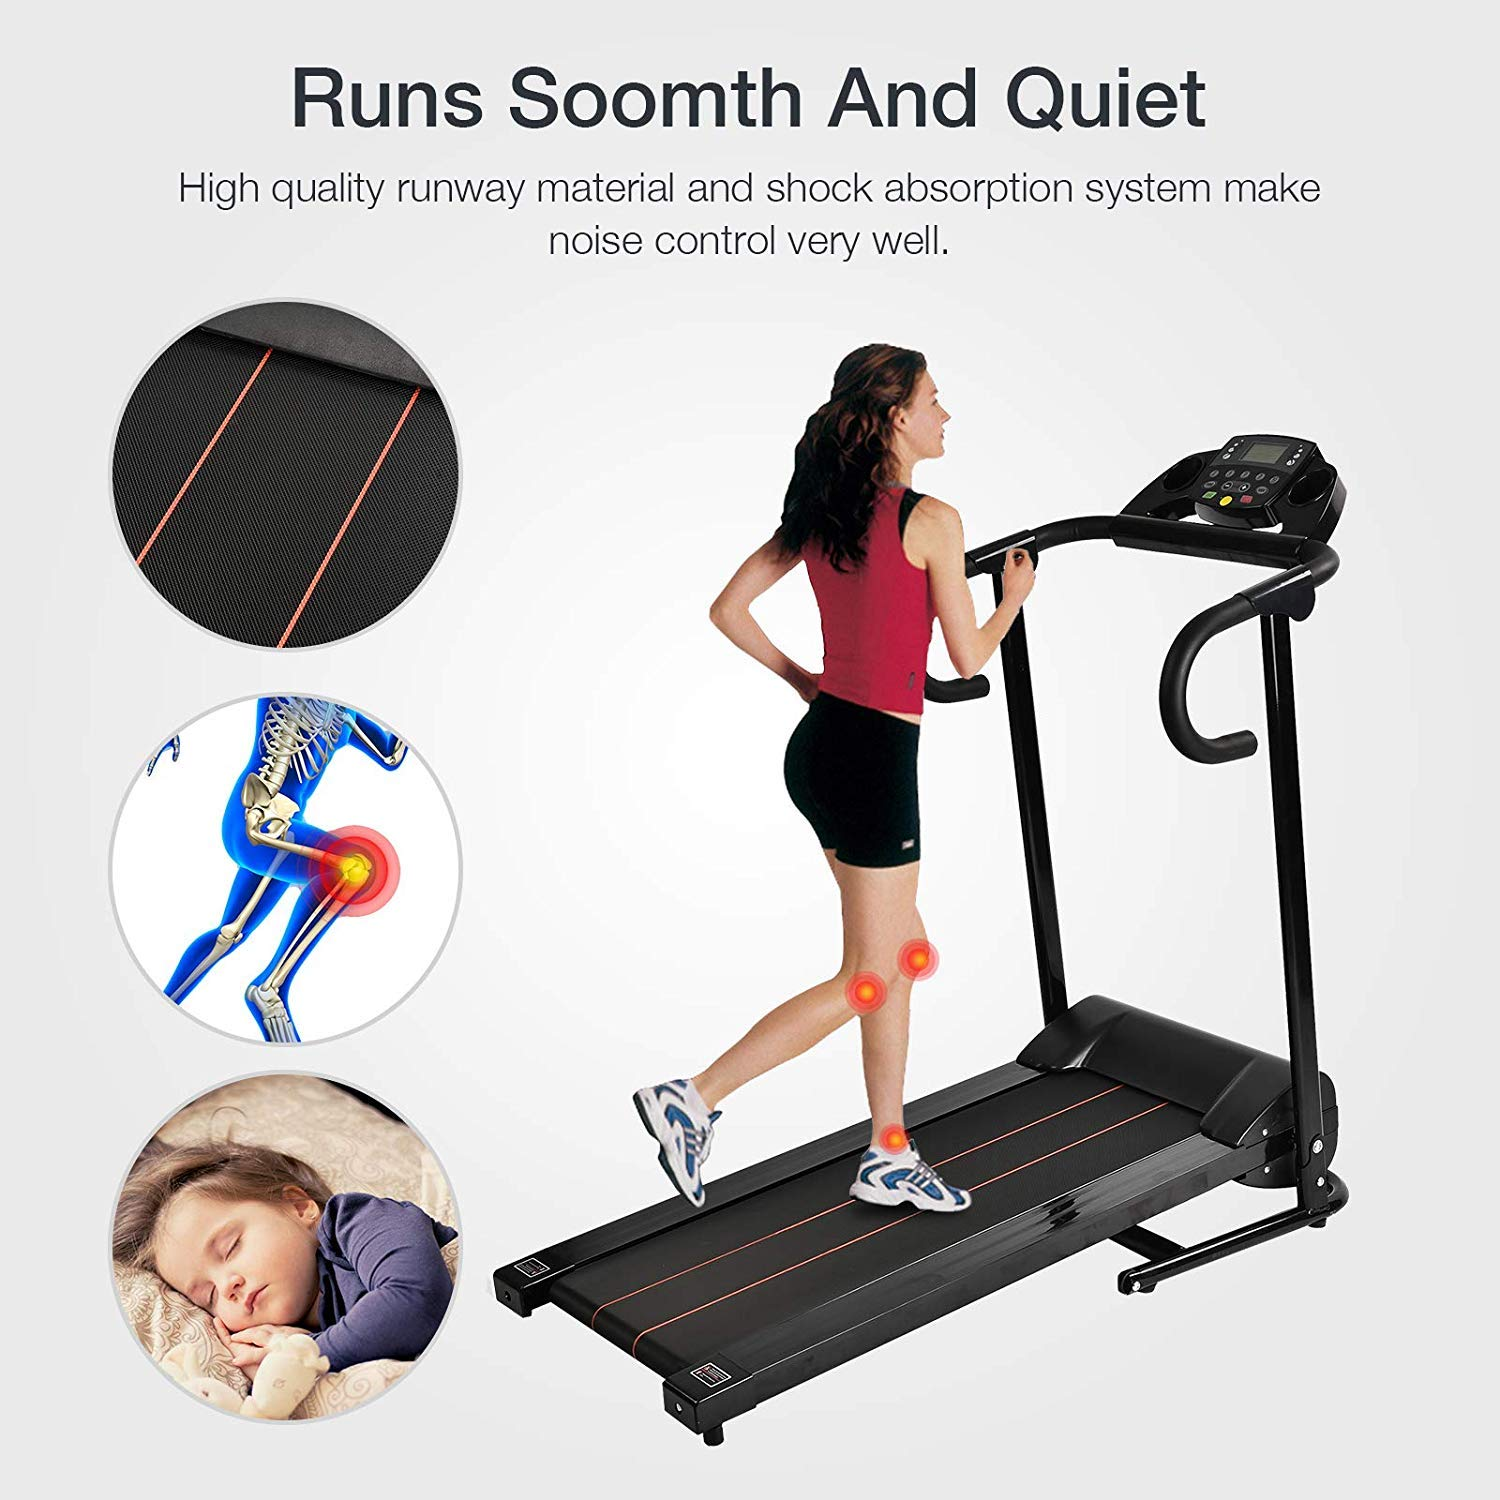 Murtisol 1100W Folding Treadmill Electric Walking Running Exercise Fitness Machine with LCD Display Easy Control Home Gym by Murtisol (Image #5)